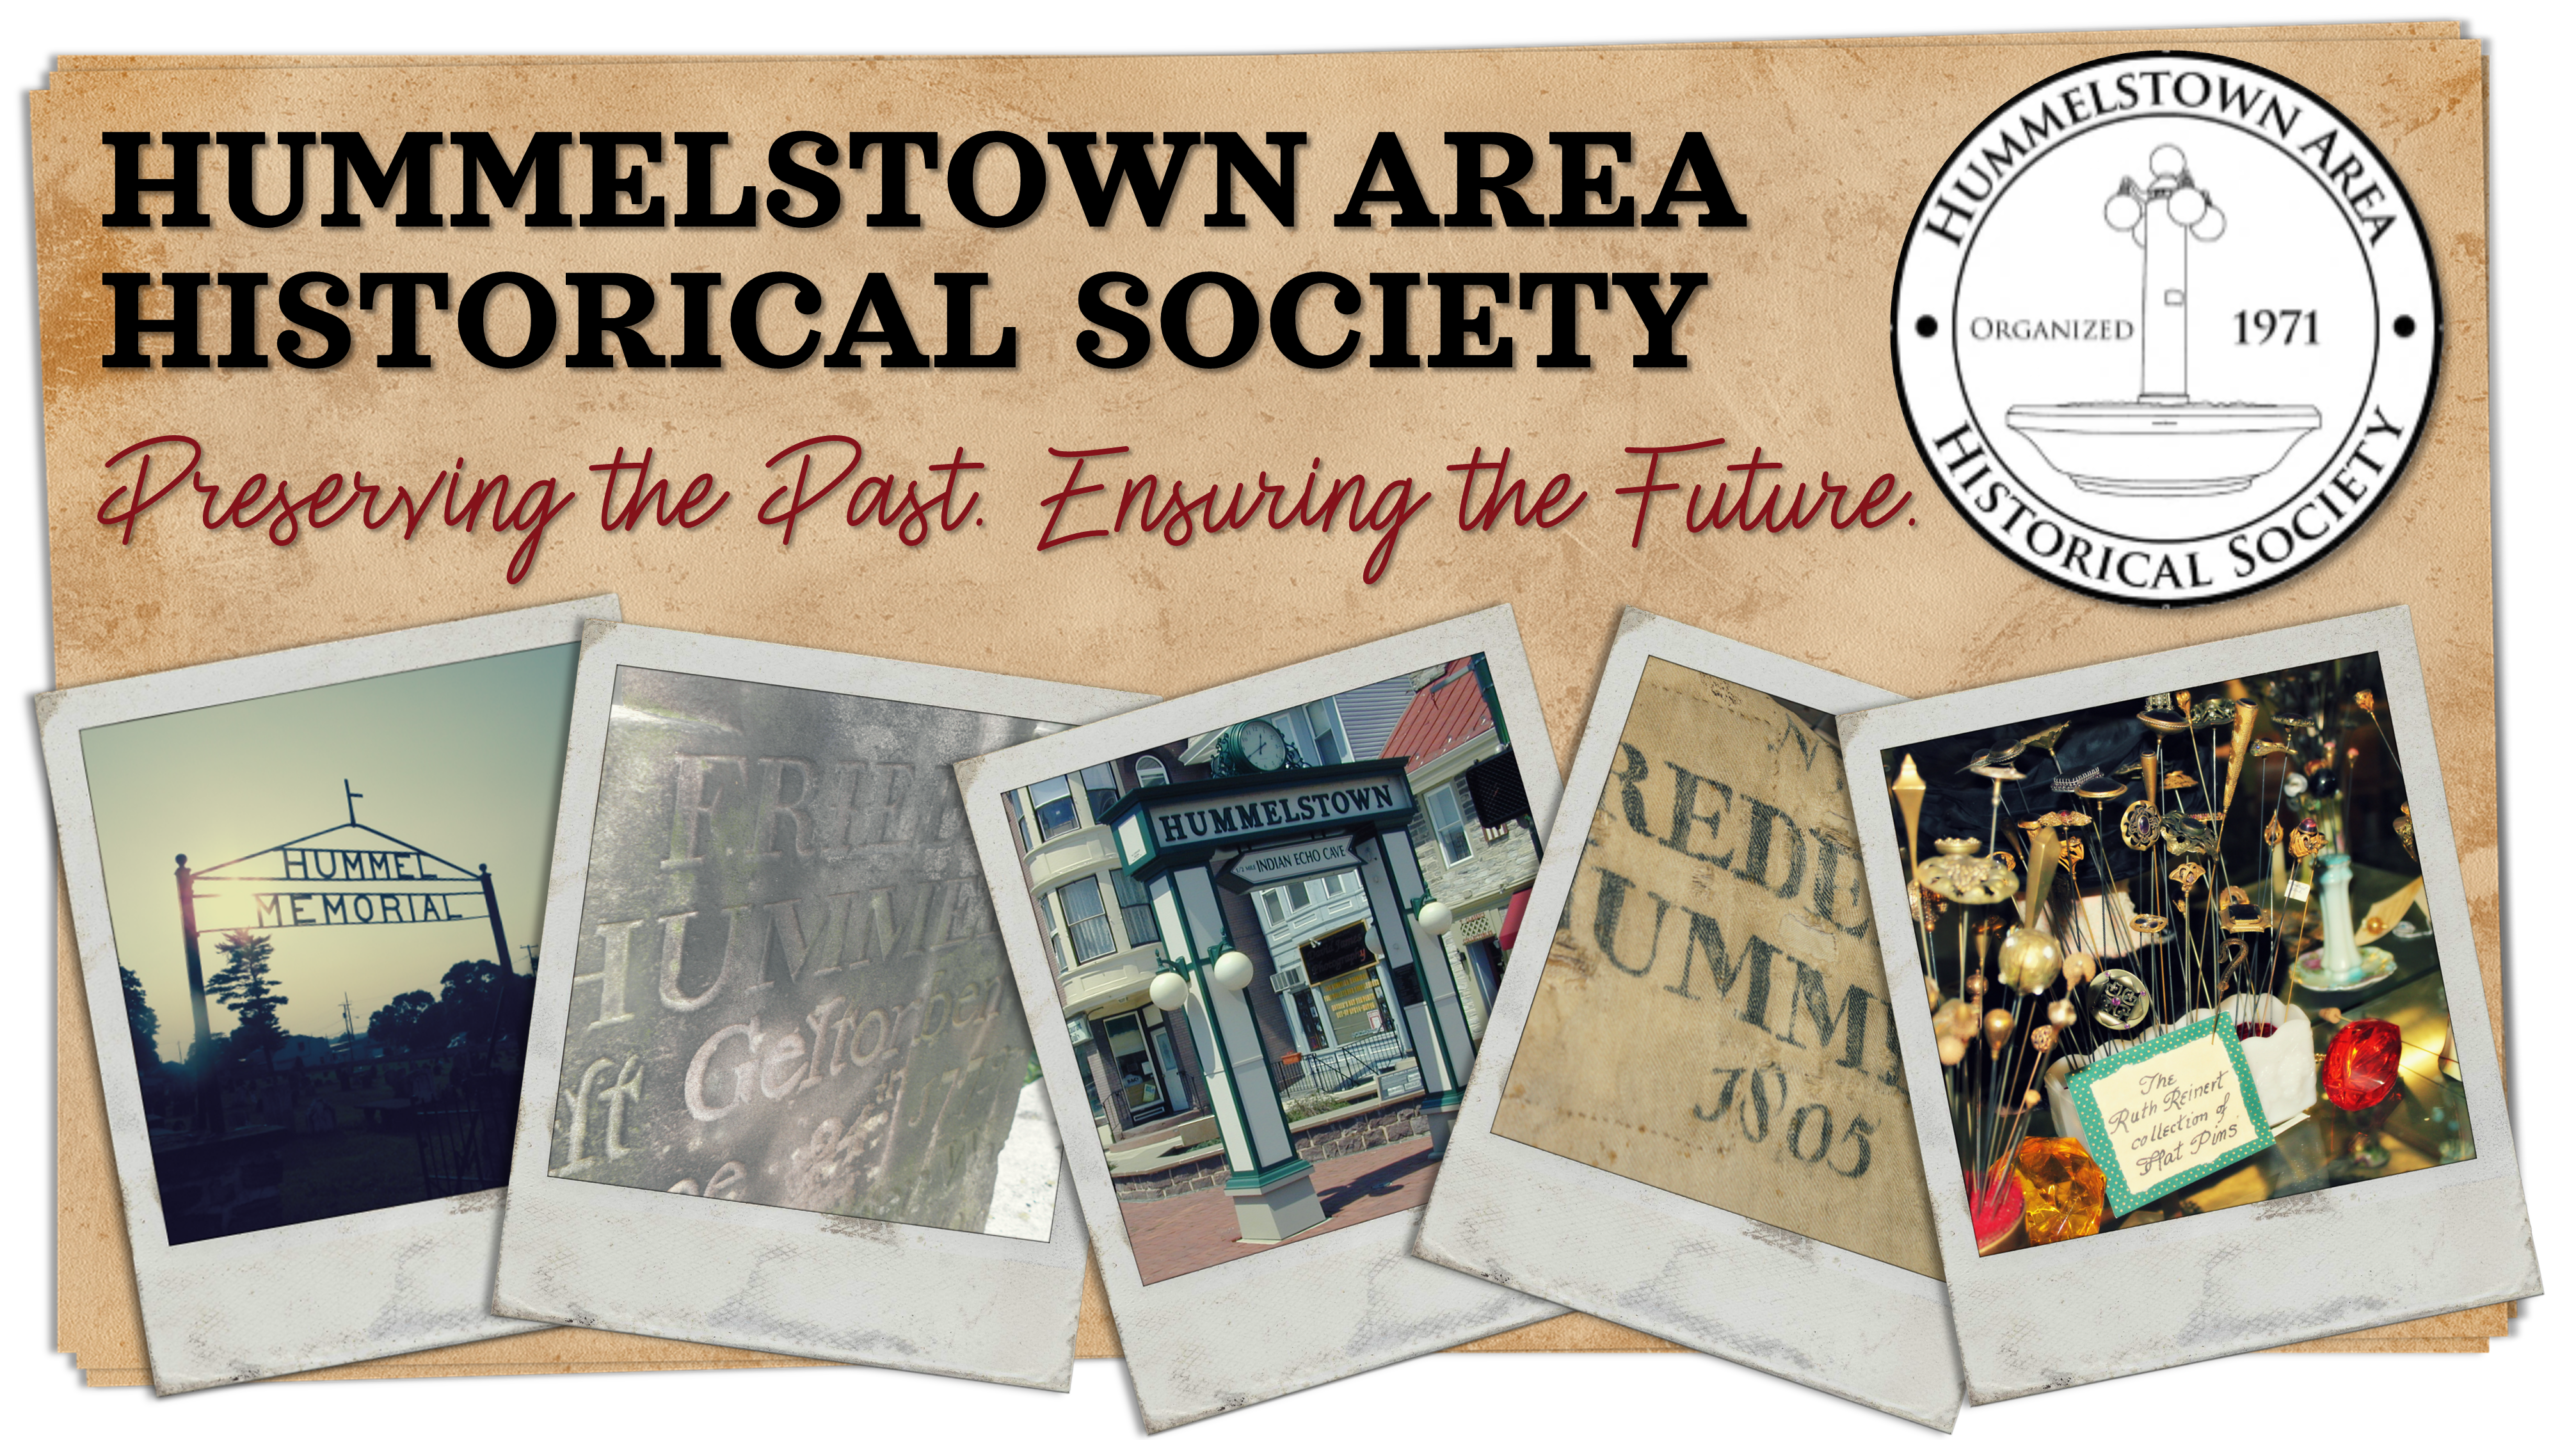 Hummelstown Area Historical Society